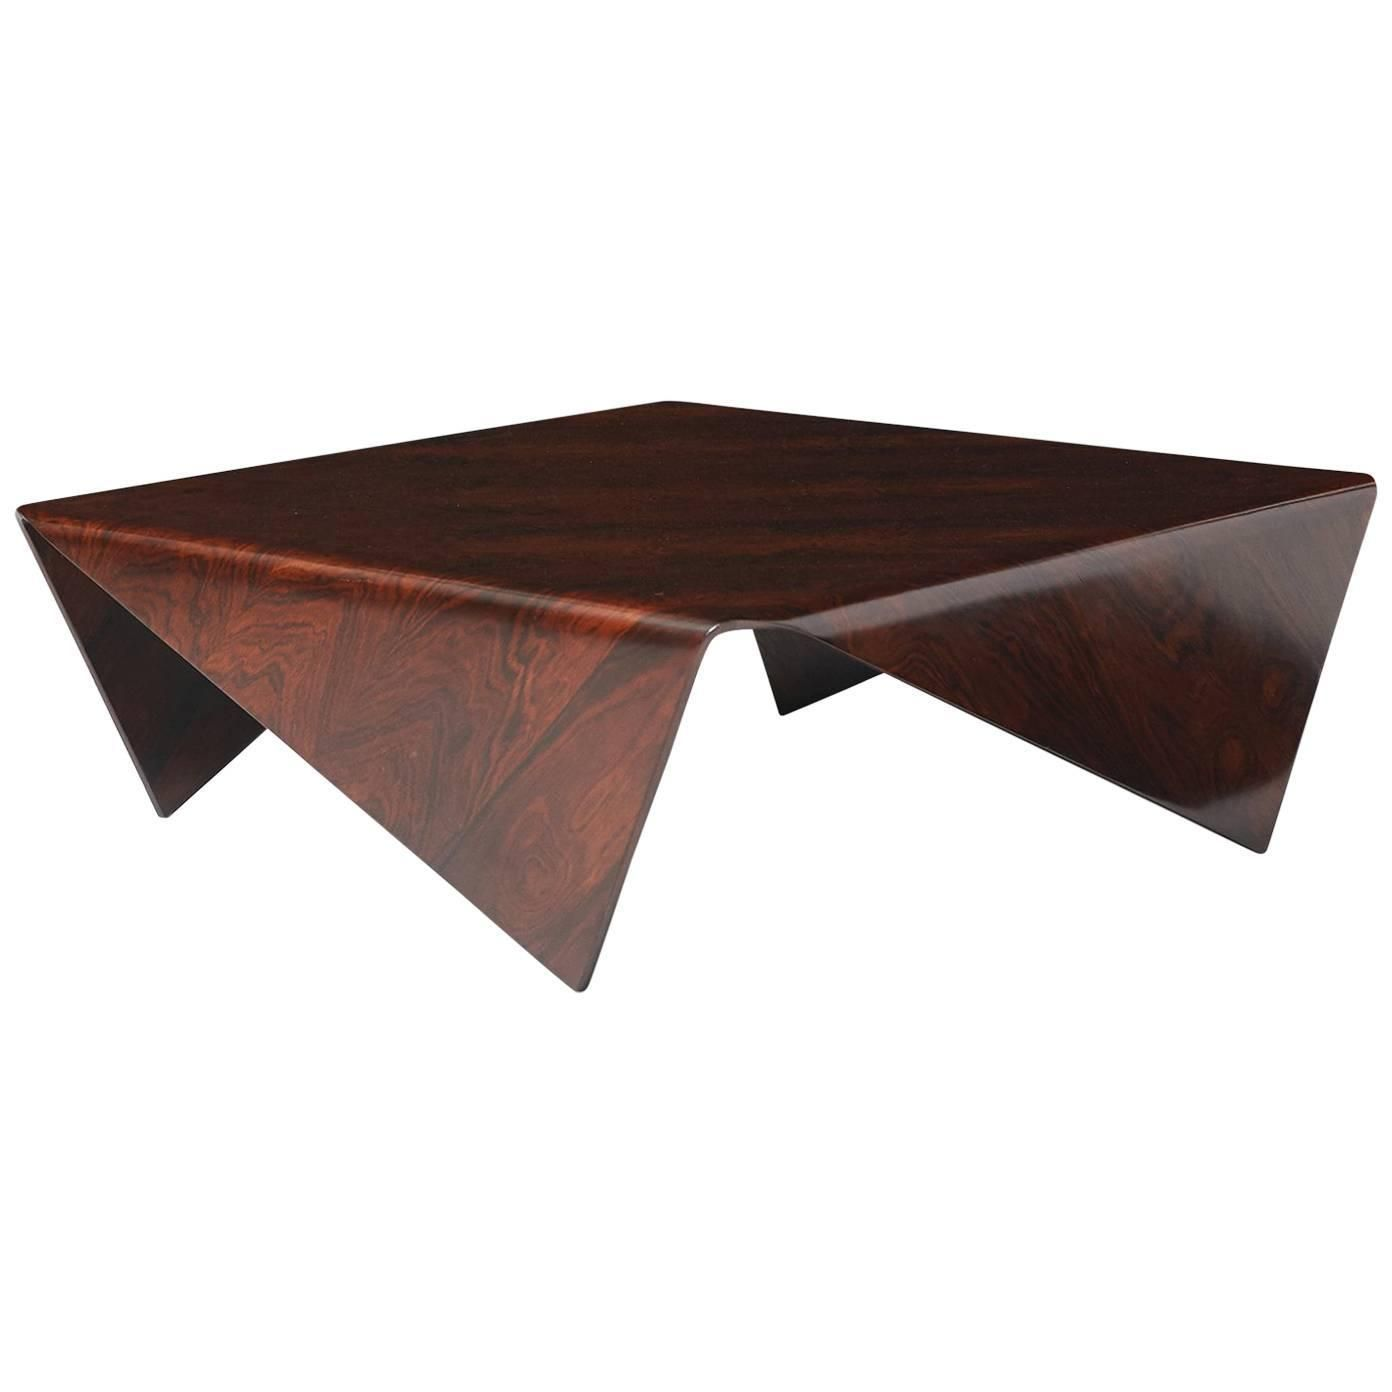 Andorinha Table By Jorge Zalszupin Cocktail Tables Square Glass Side Table Glass Coffee Table [ 1392 x 1392 Pixel ]